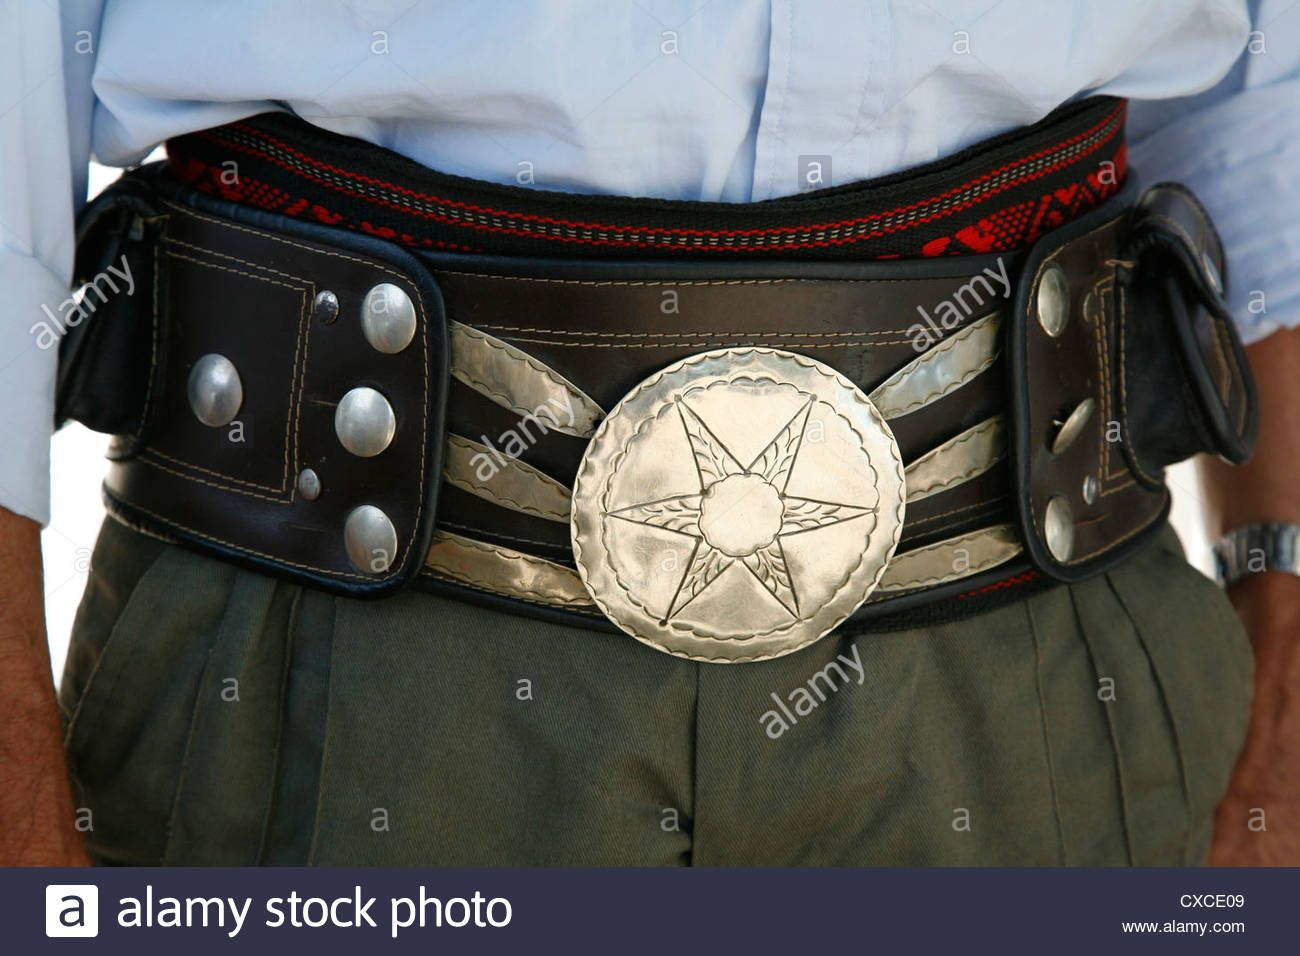 Related image Stock photos, Gaucho, Belt